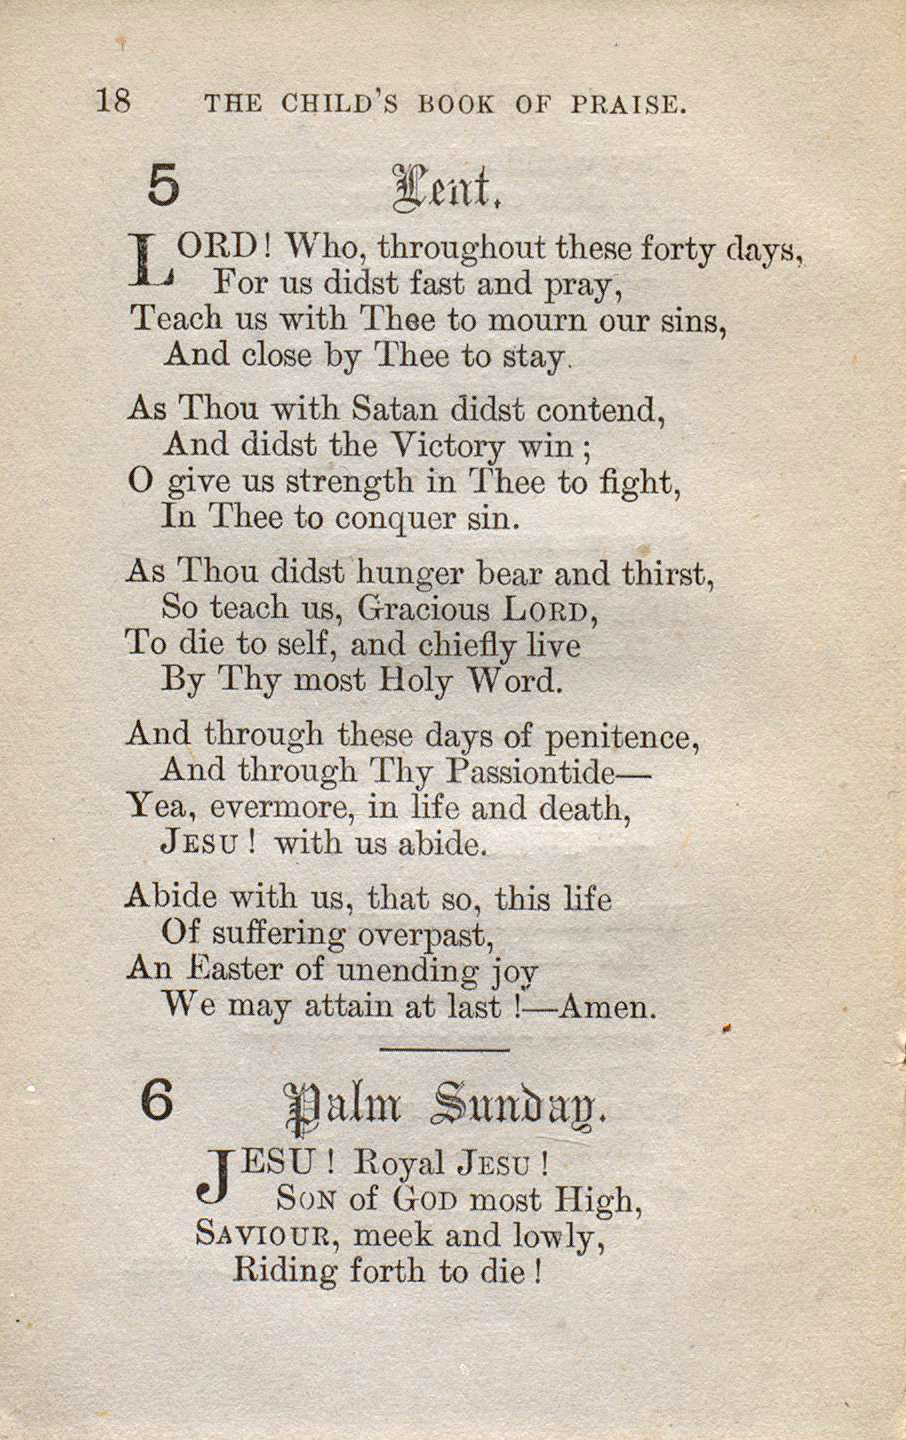 Fig. 1.   The Child's Book of Praise  (London: J.T. Hayes, 1873).